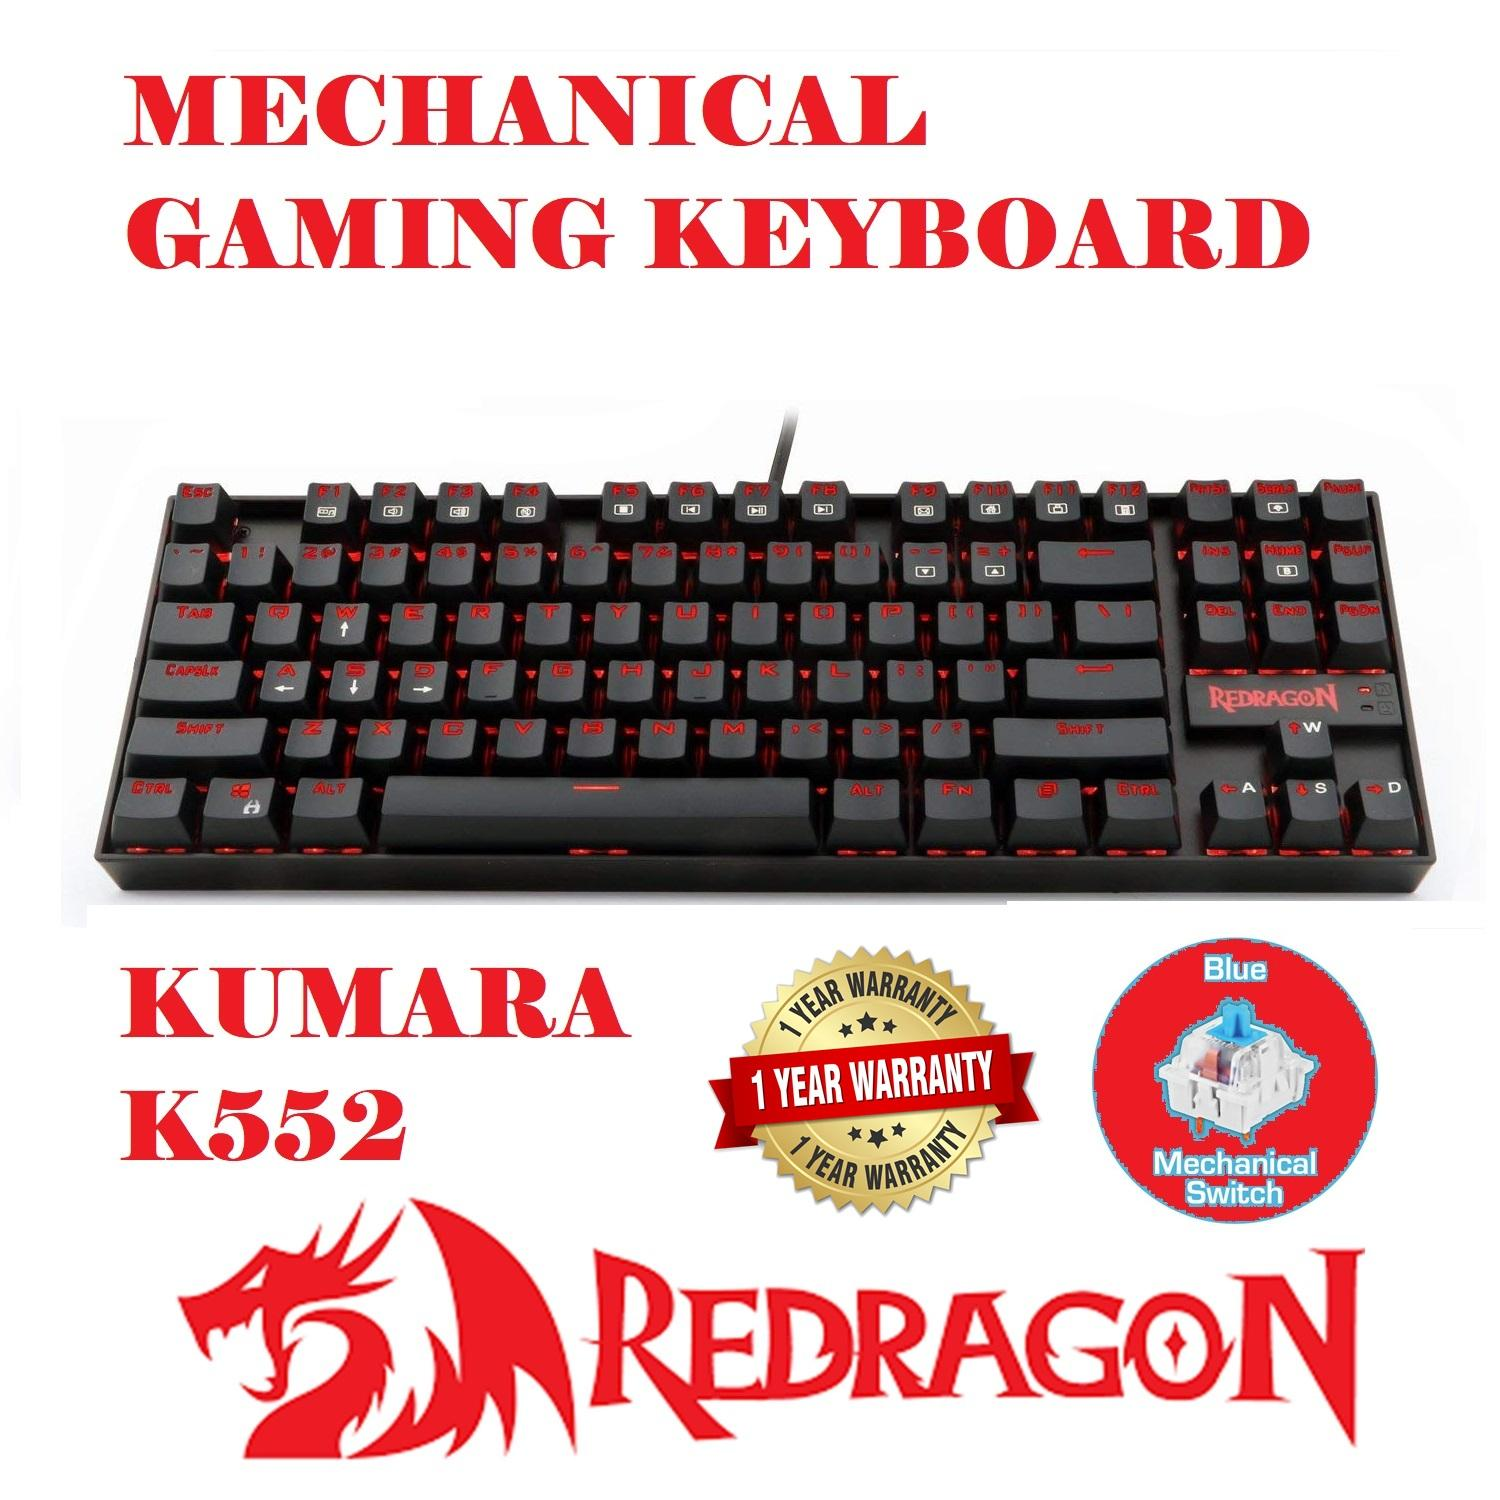 Redragon Kumara K552 Mechanical Gaming Keyboard (Single BackLight)